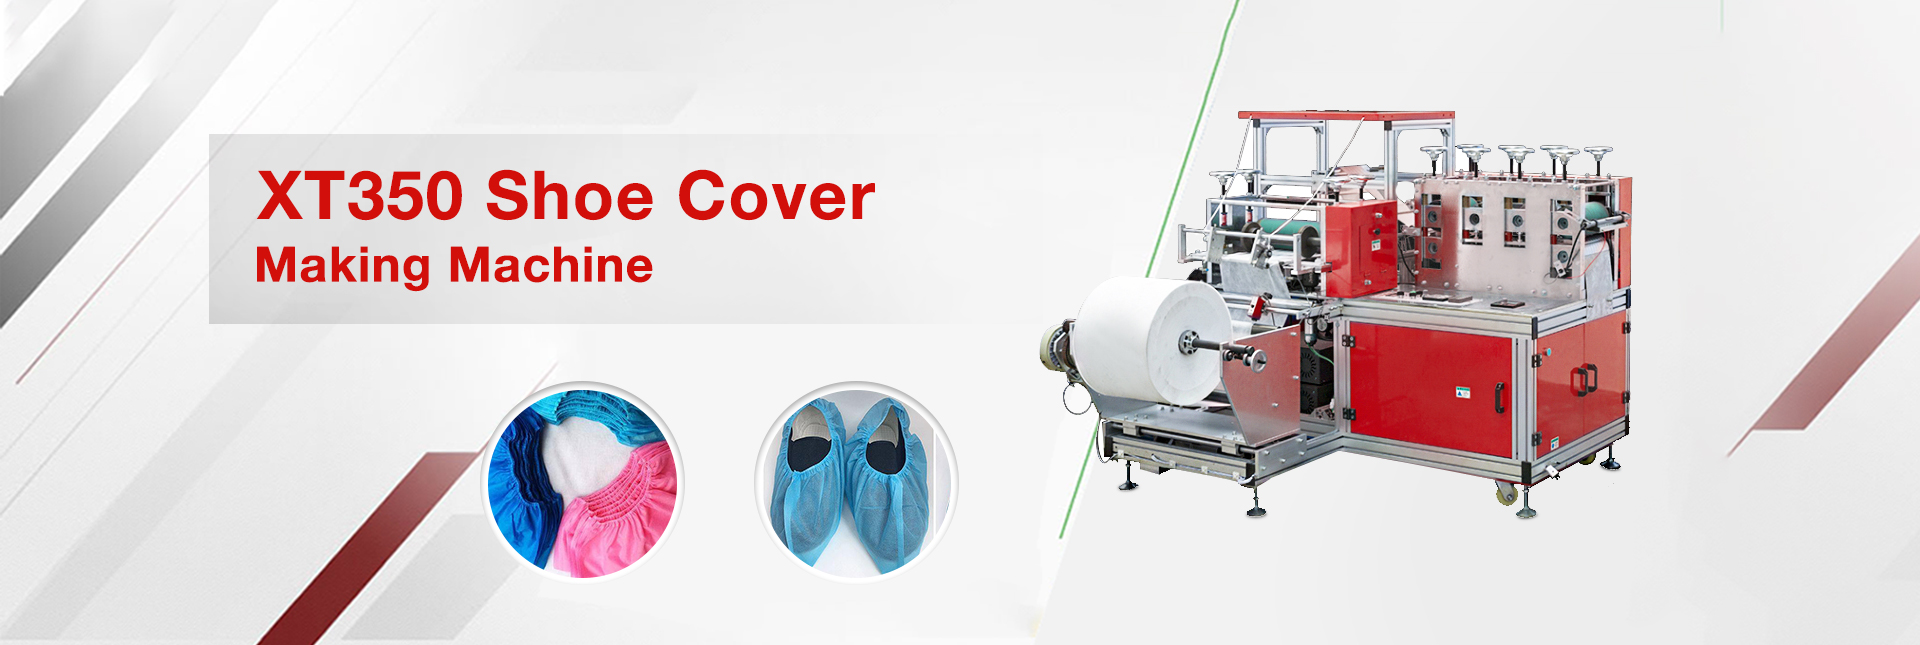 XT350 Shoe Cover Making Machine